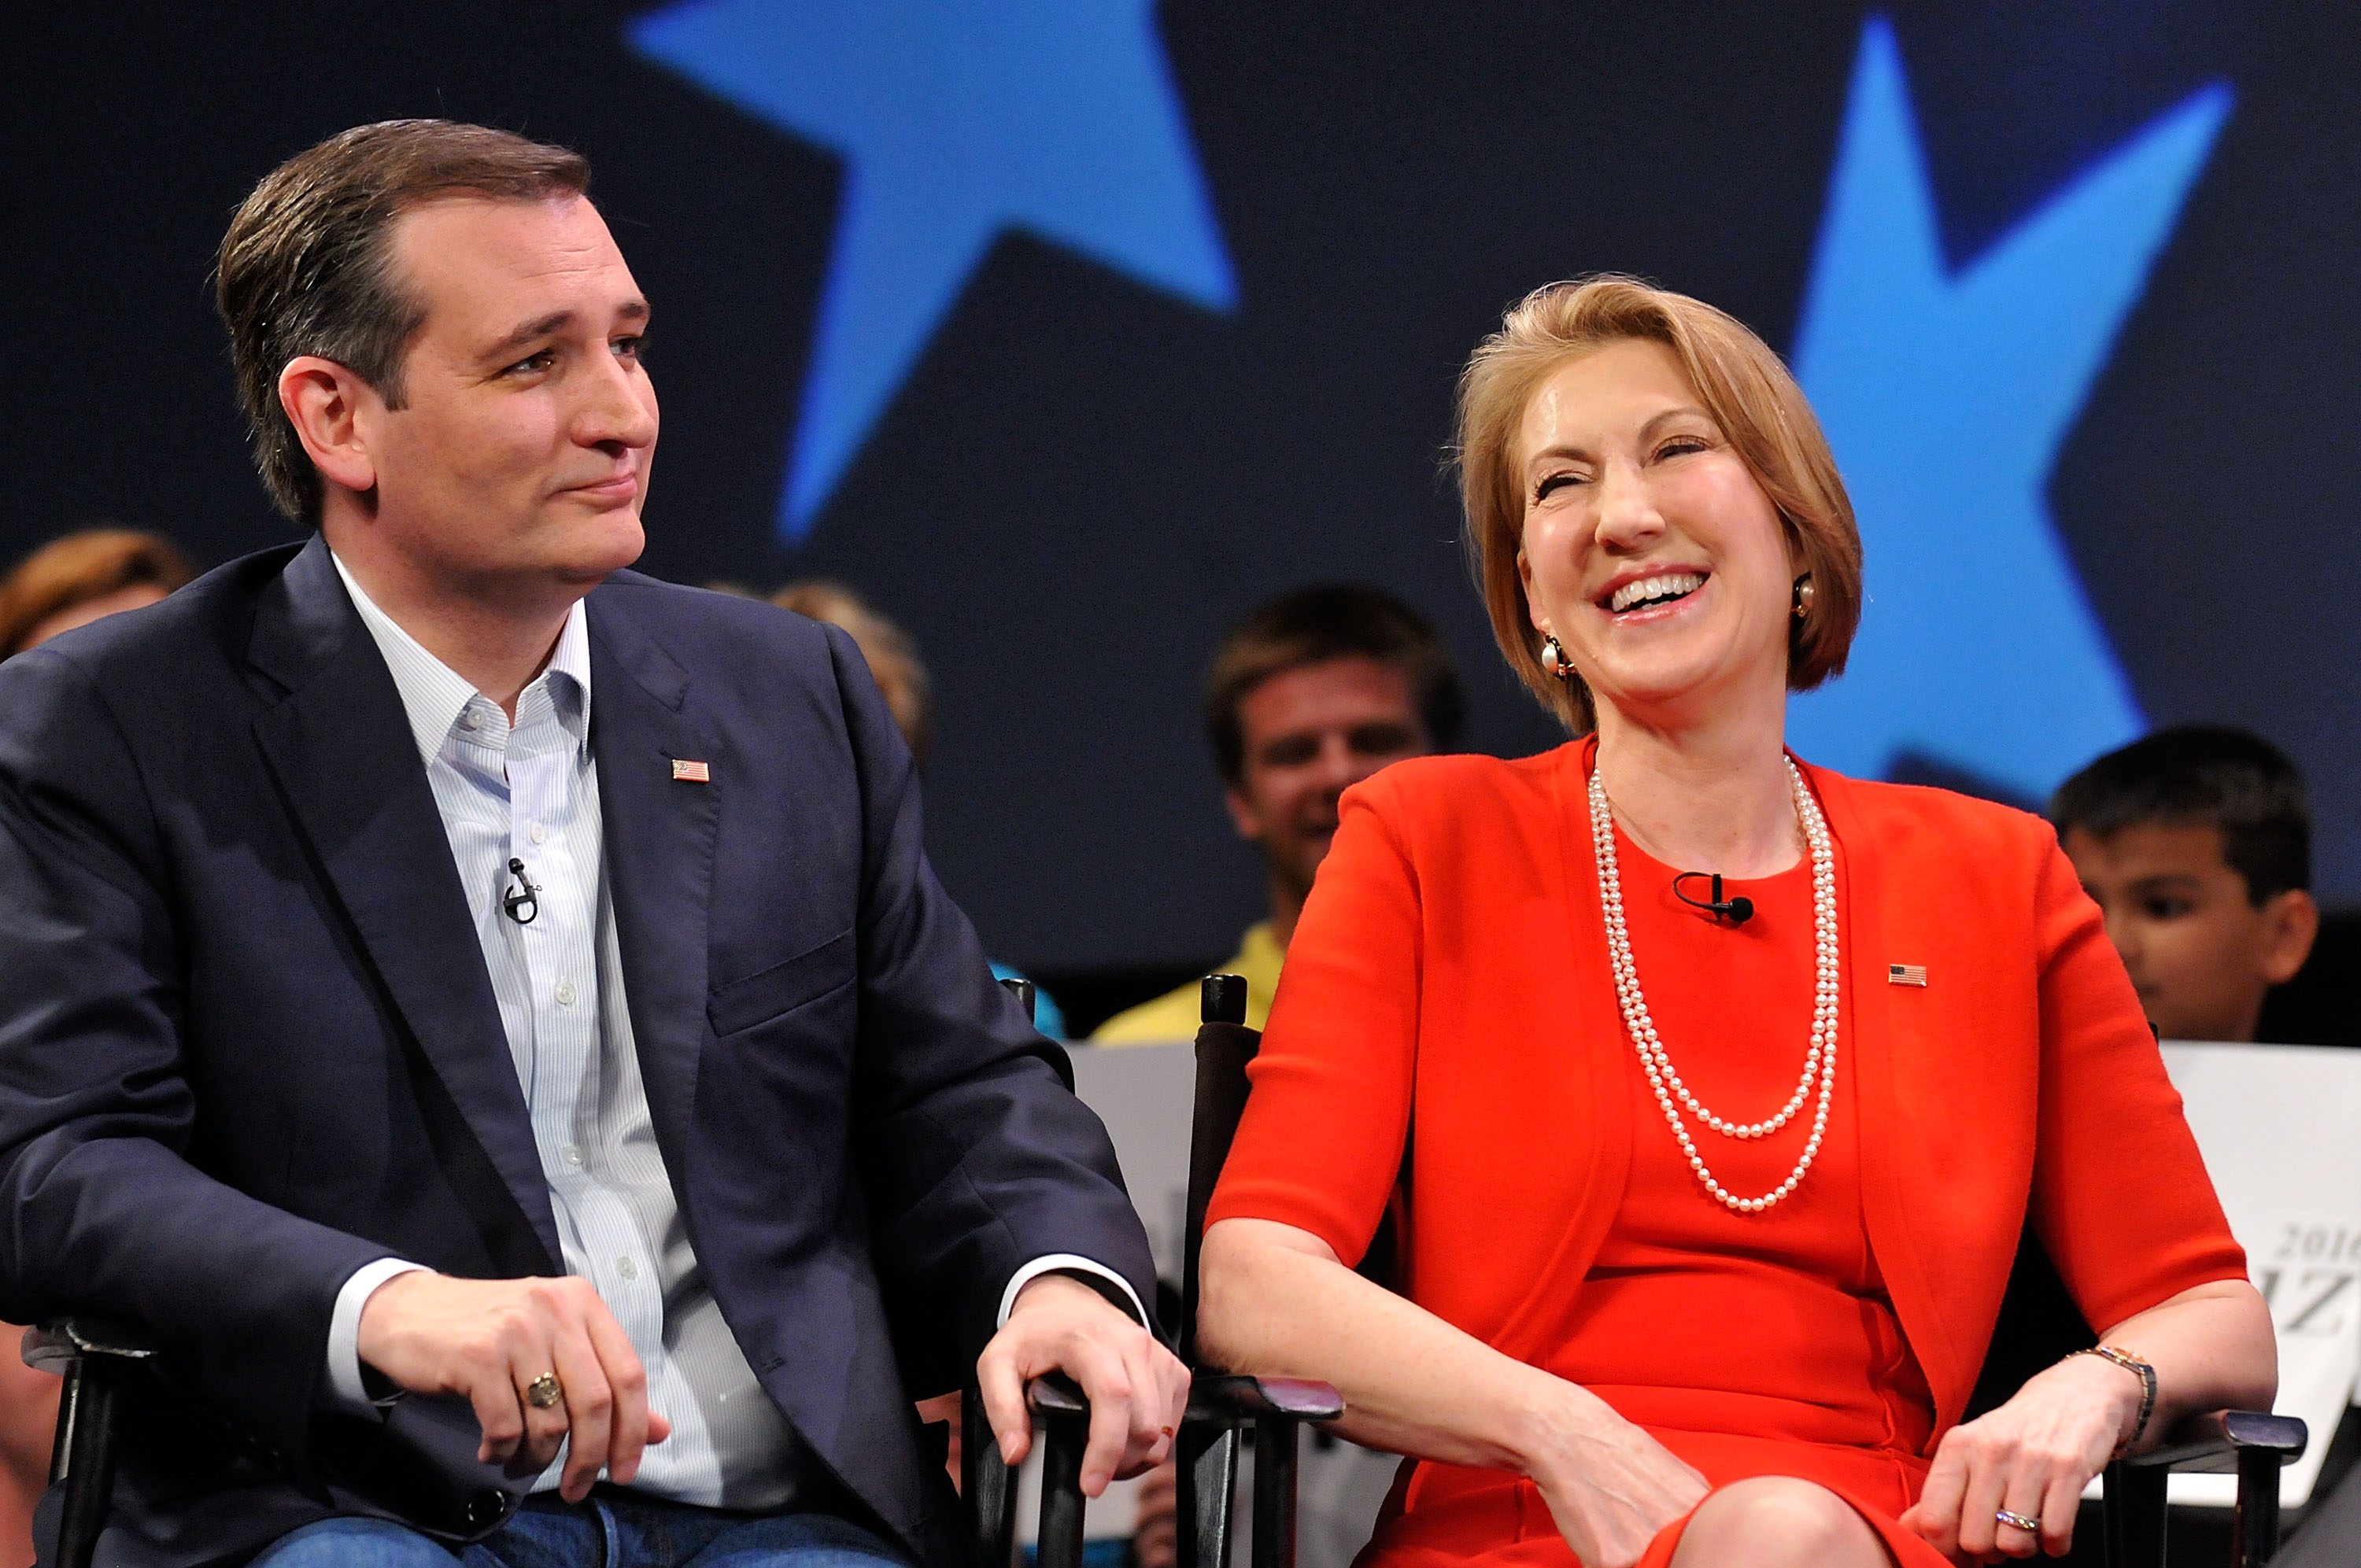 Cruz: 'Carly may become the first vice president in history to have a very impressive fluency with heart and smiley face emoticons'